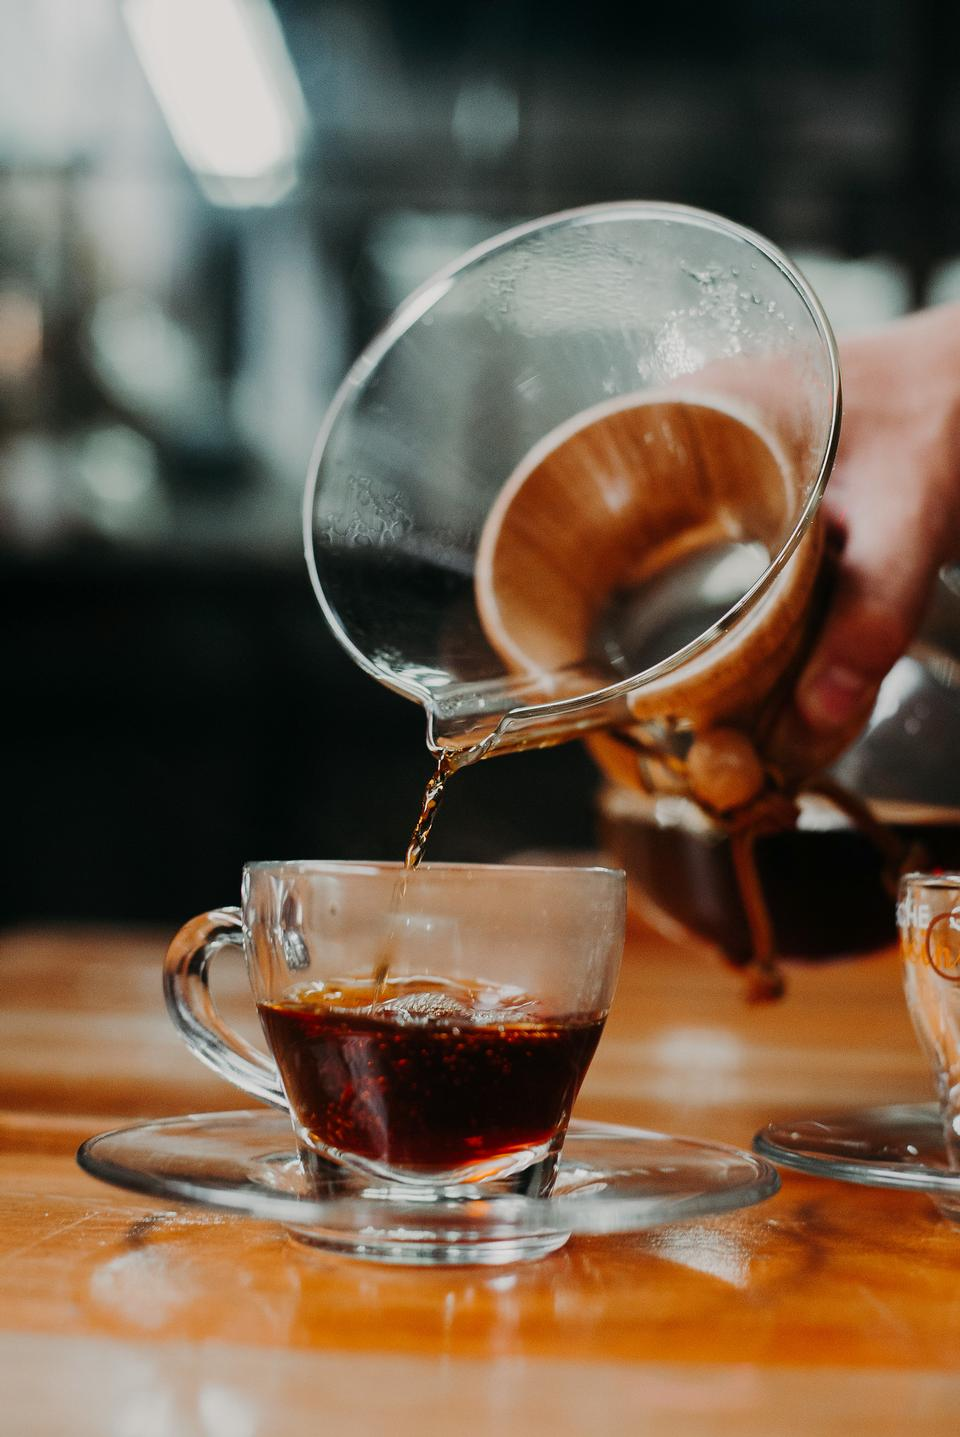 Close-up view of bartender preparing coffee